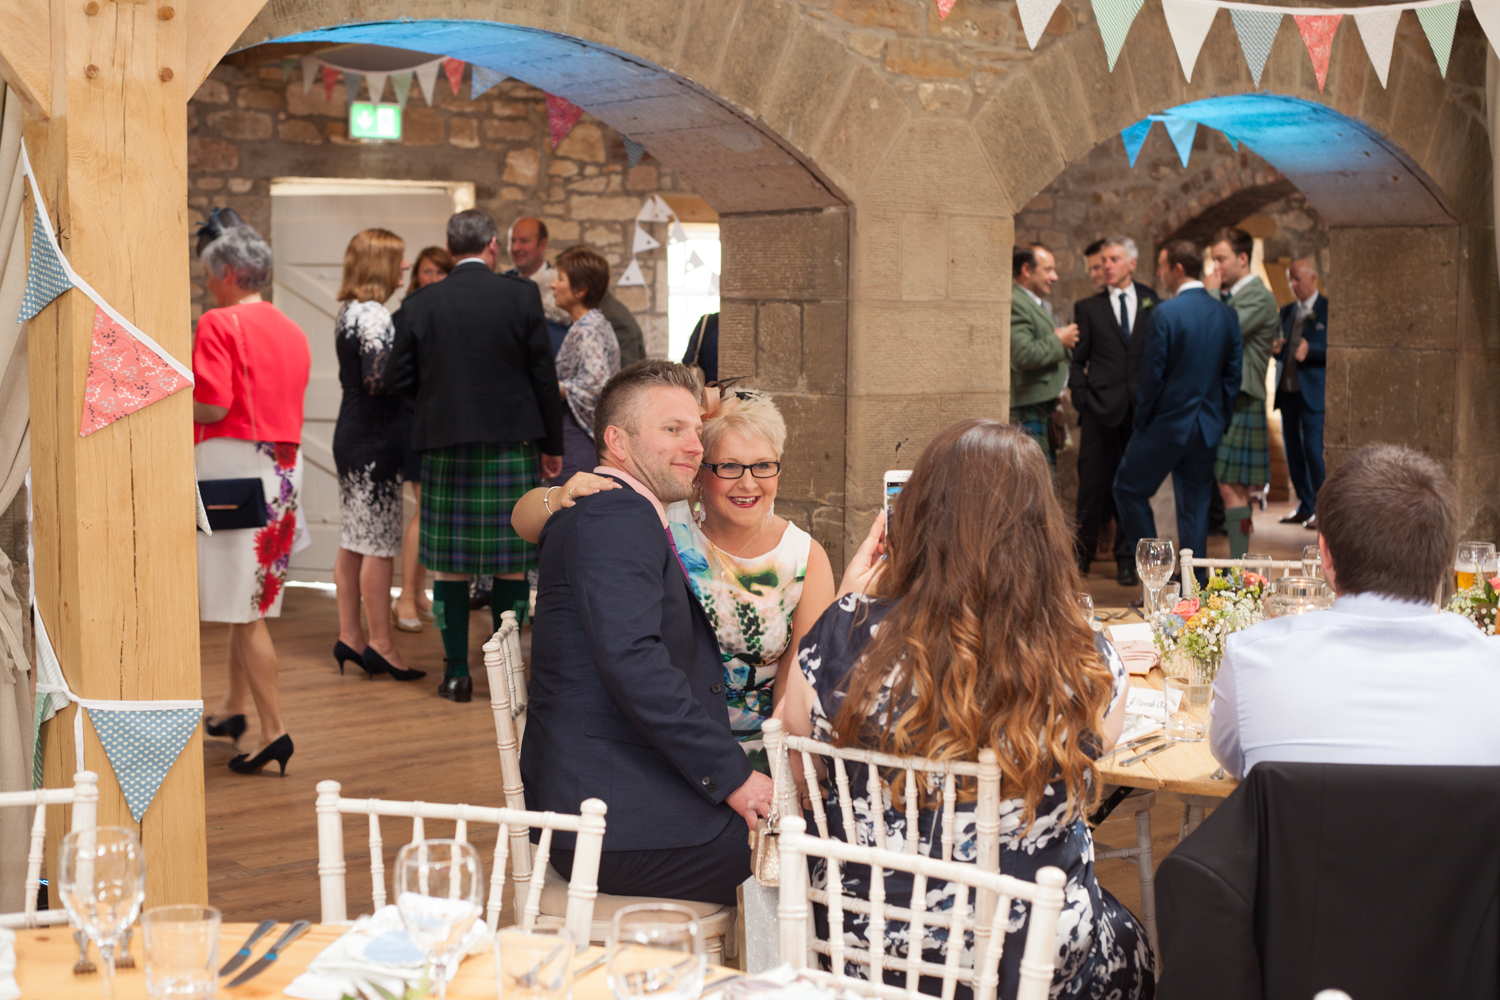 WEDDING_PICTORIAL_DOXFORD_BARNS_ALNWICK_BERWICK_SEASIDE_BUNTING_FARM-0538.jpg